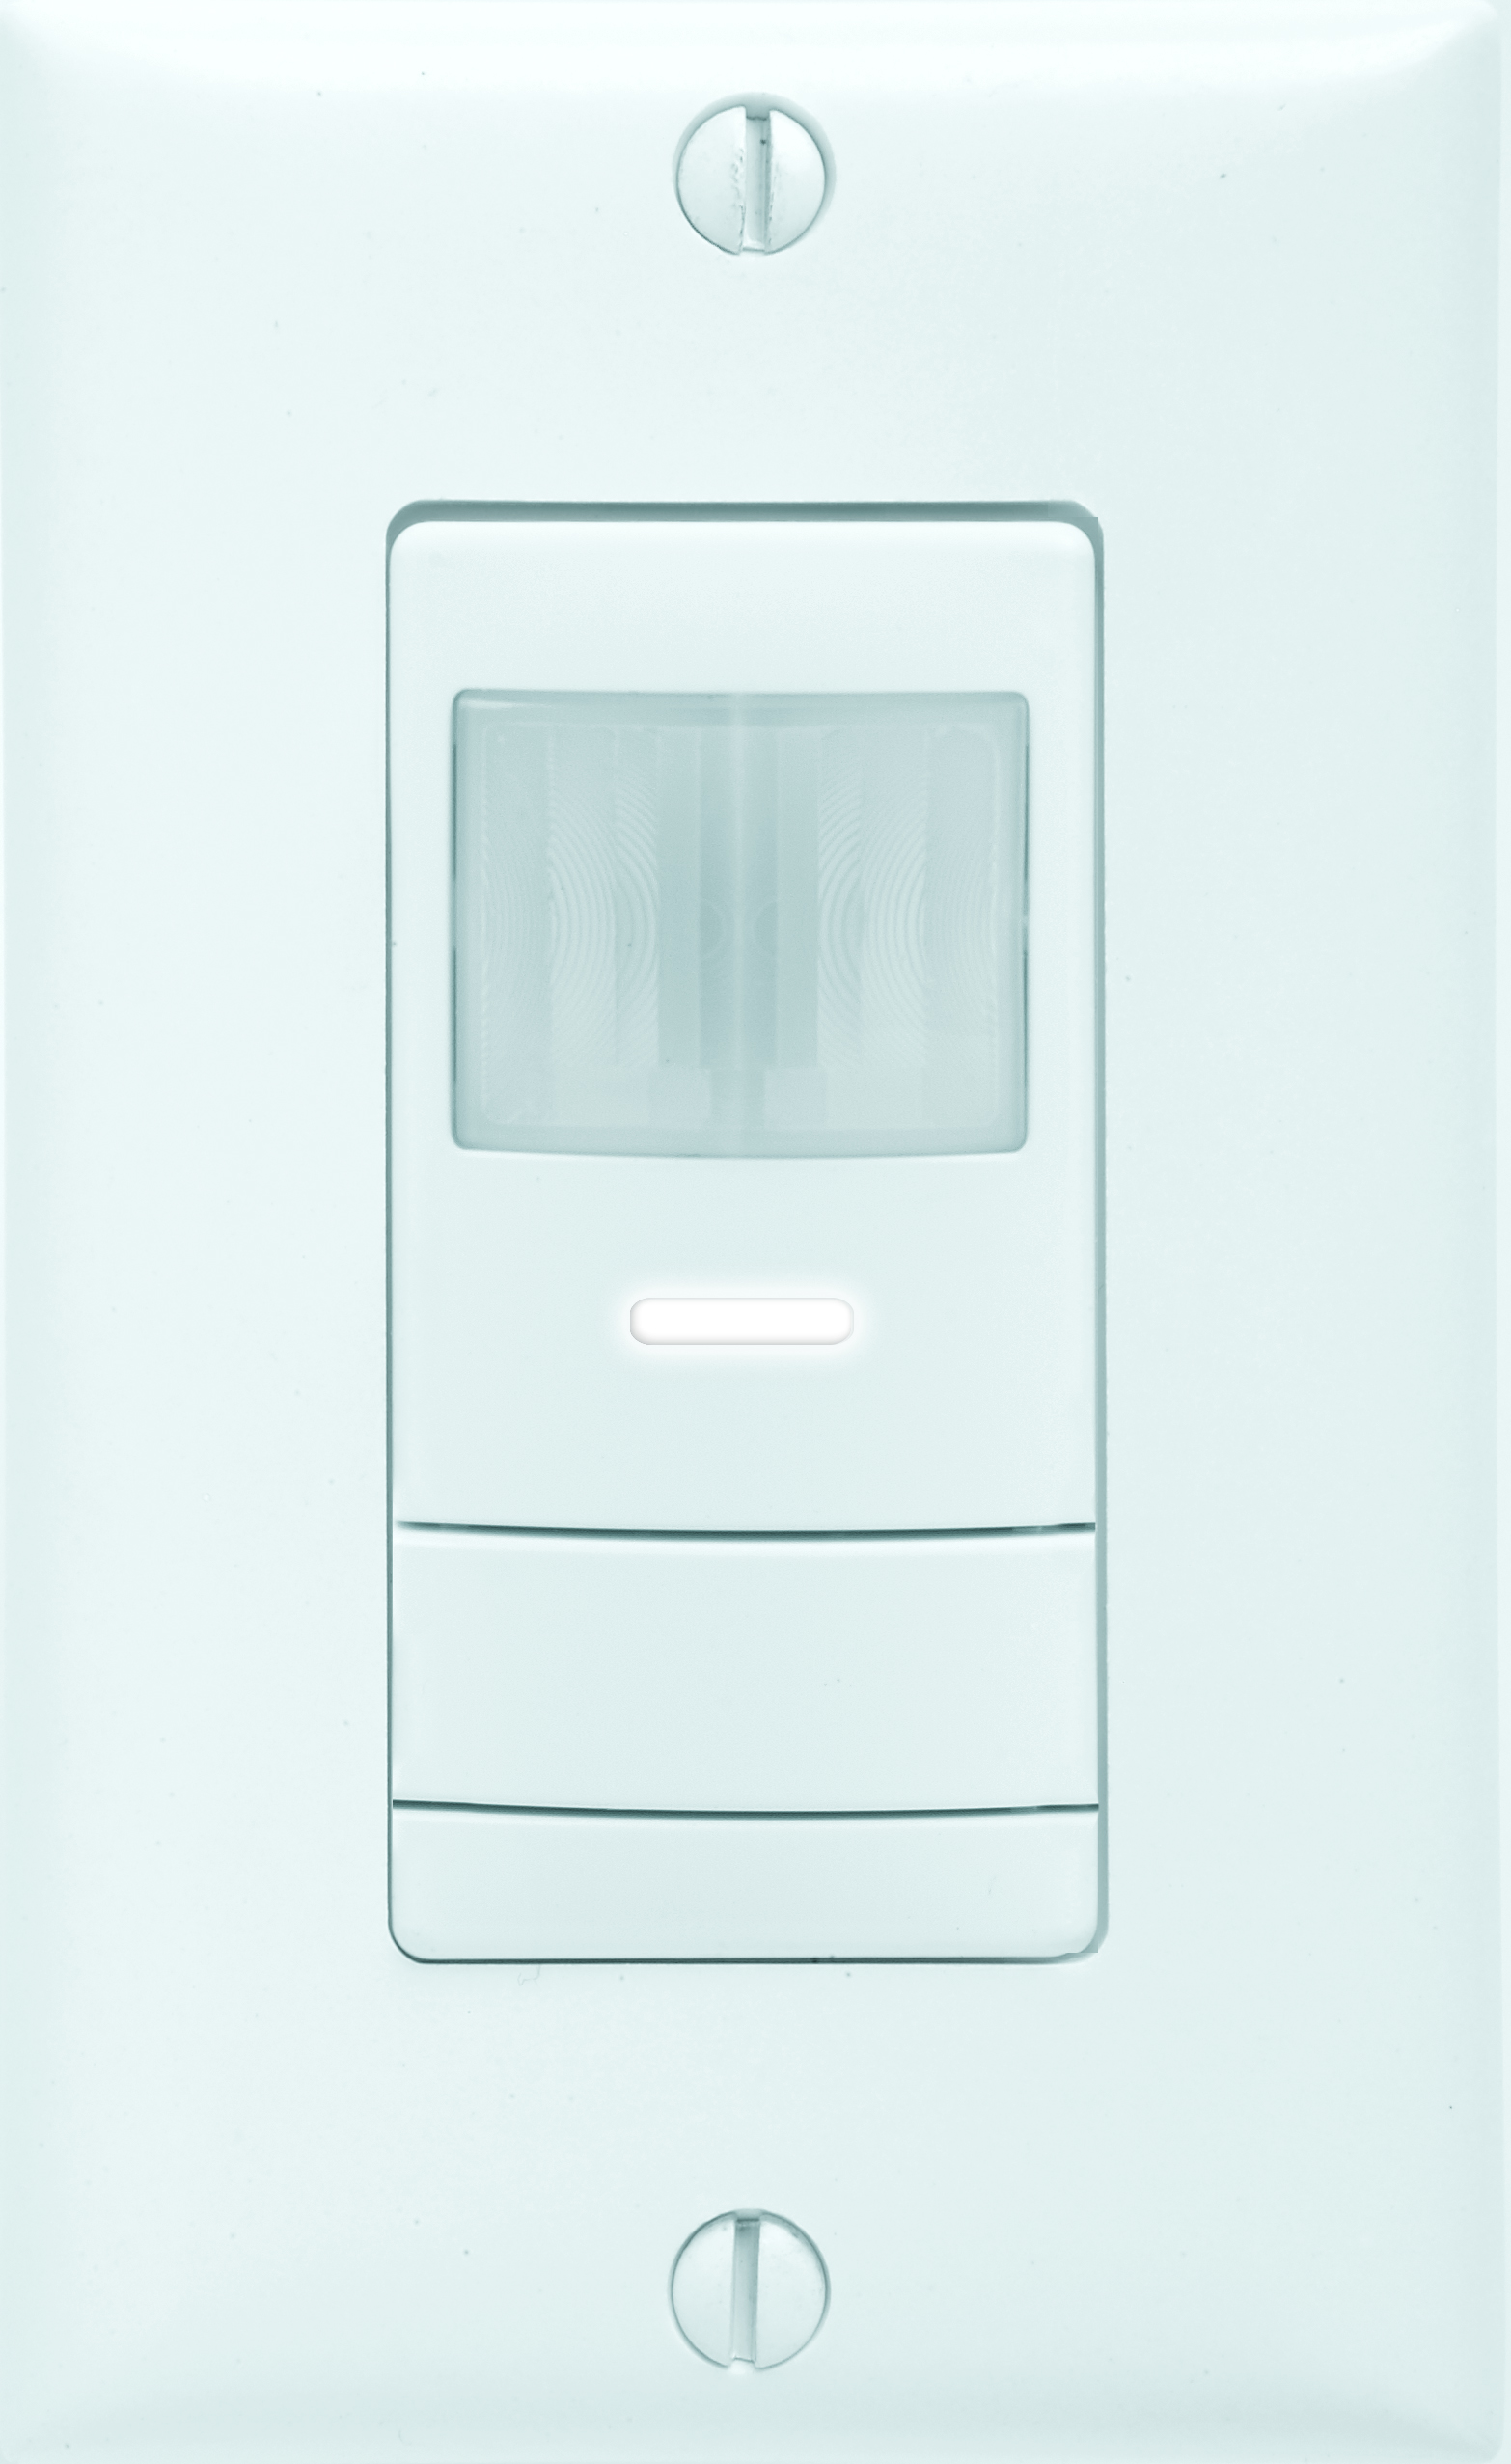 Lithonia Lighting / Acuity WSX-IV WSX Series Wall Switch Occupancy Sensor; Passive infrared (PIR), Ivory